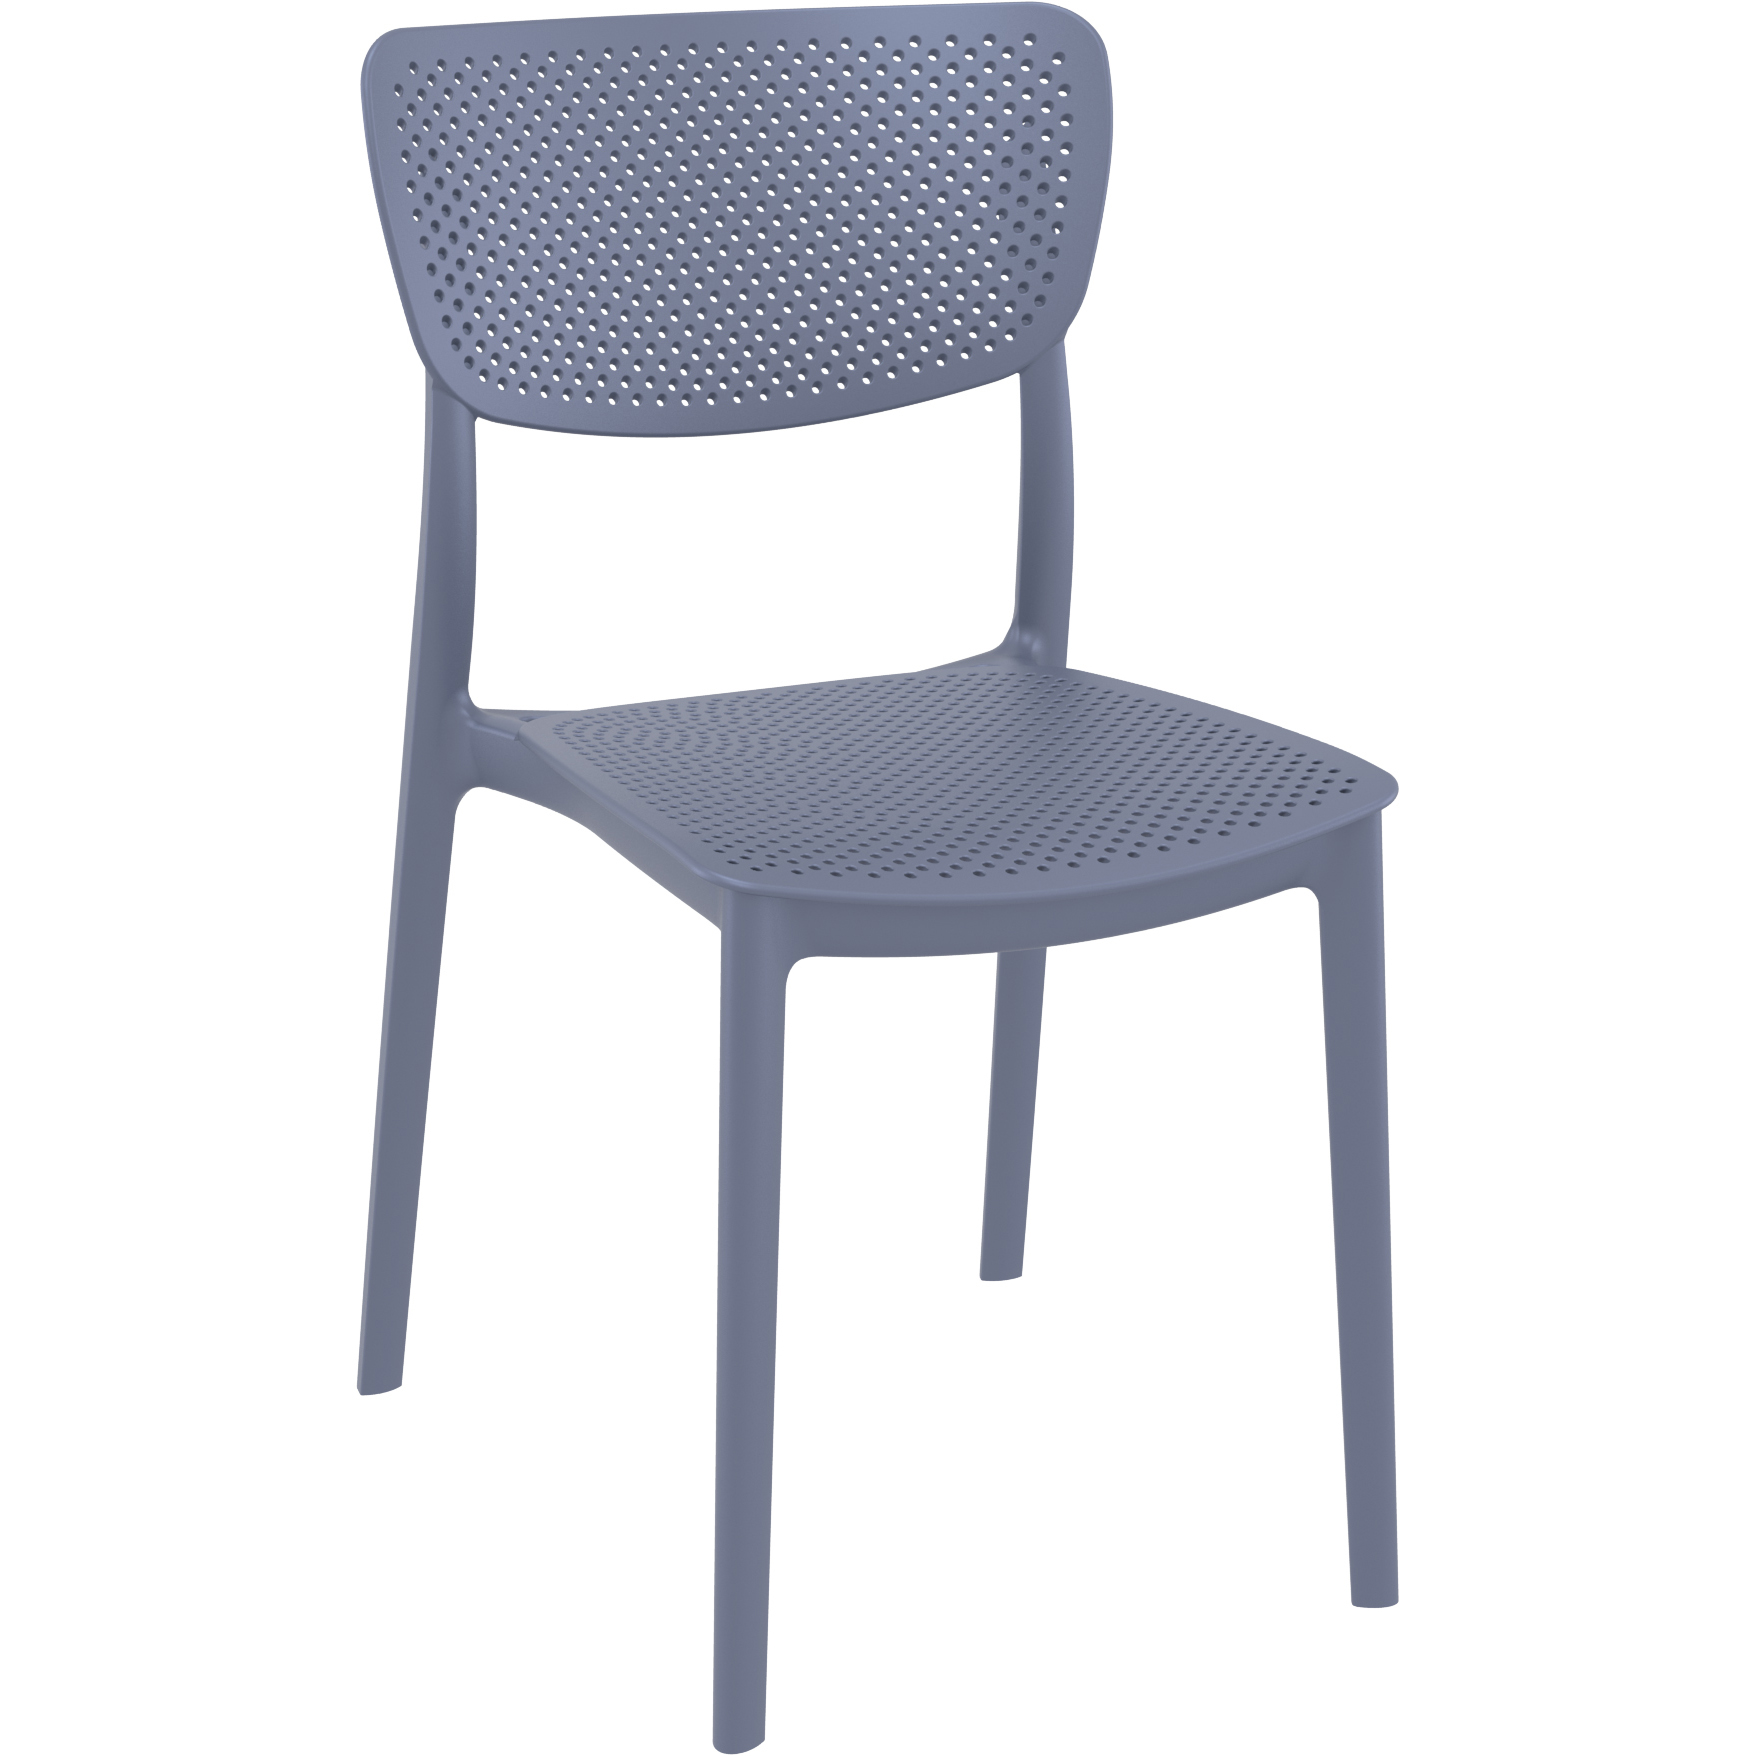 Lucy Chair - Anthracite